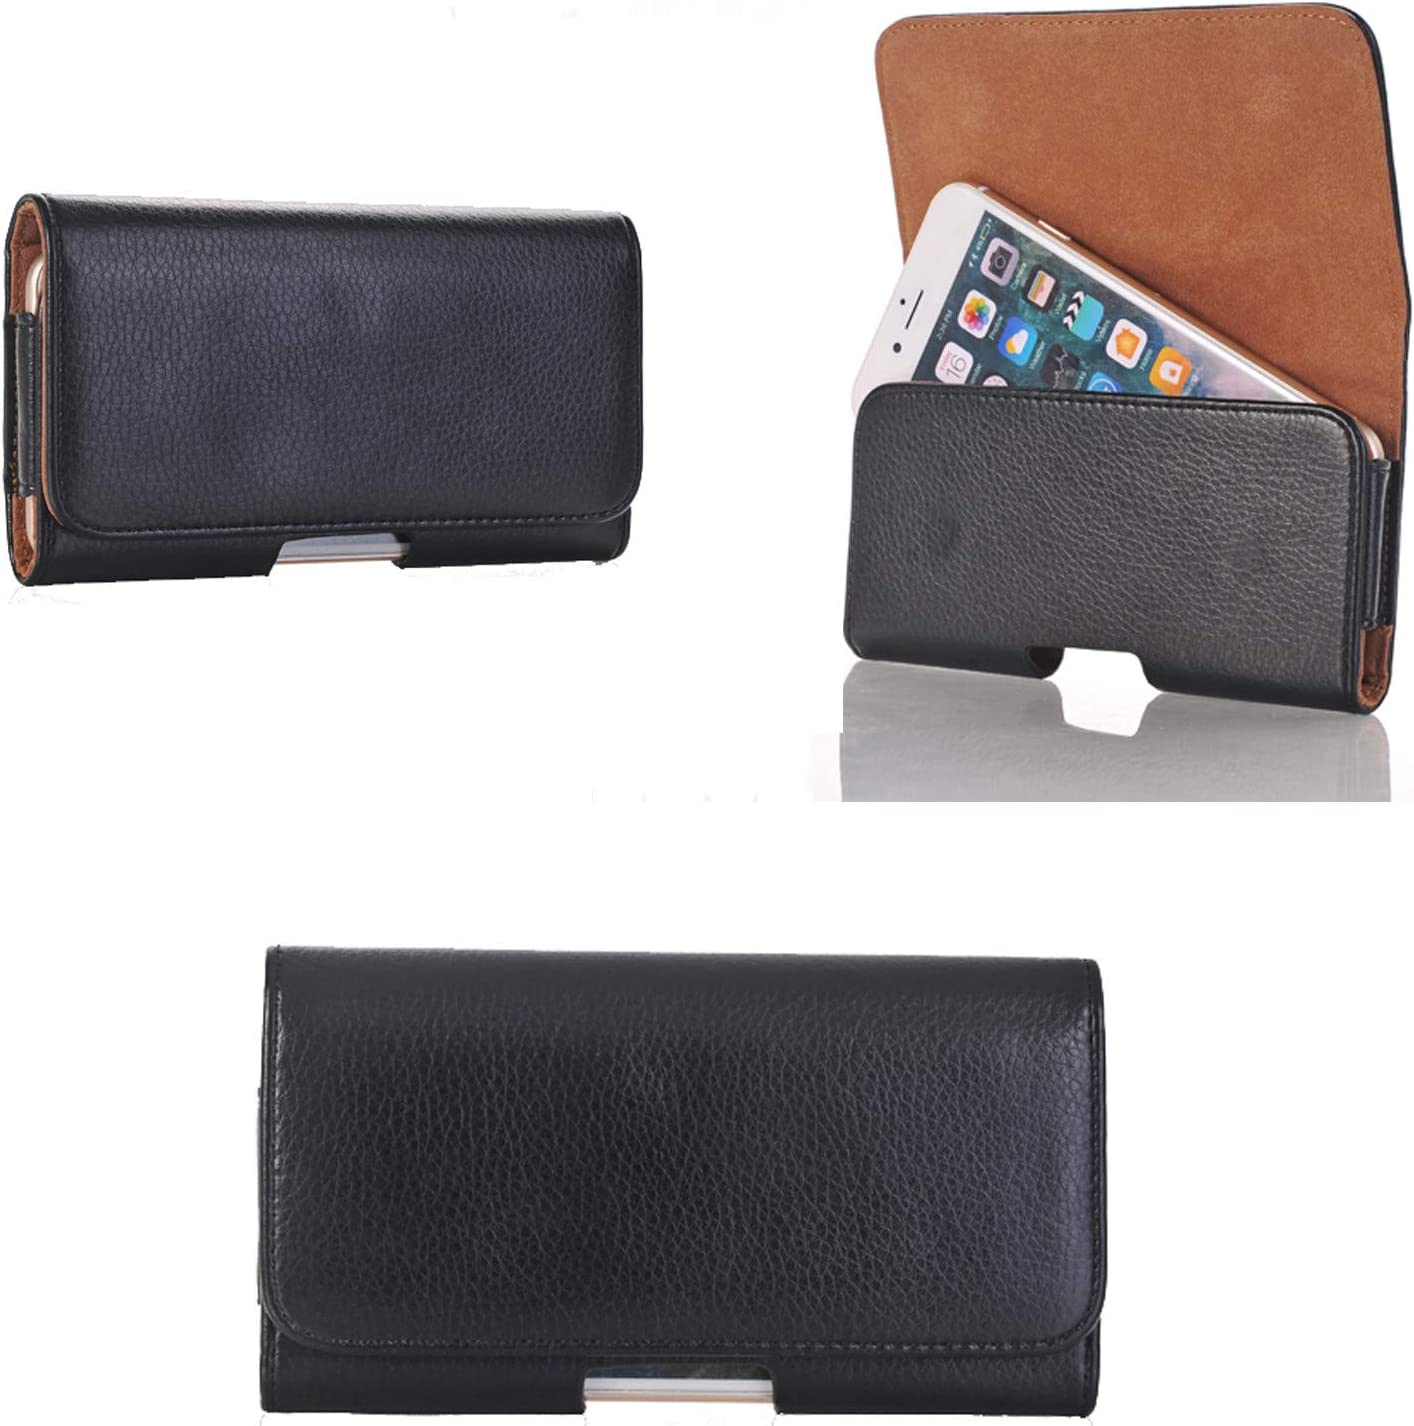 Faux Leather Horizontal Belt Case Holster Smart Phone Pouch Holder with Swivel Belt Clip for Samsung Galaxy A10 A20 A50 / LG V40, V35 ThinQ, K40 / Motorola Moto G7, G6, G6 Play, Z4, Z3 / Pixel 3a XL